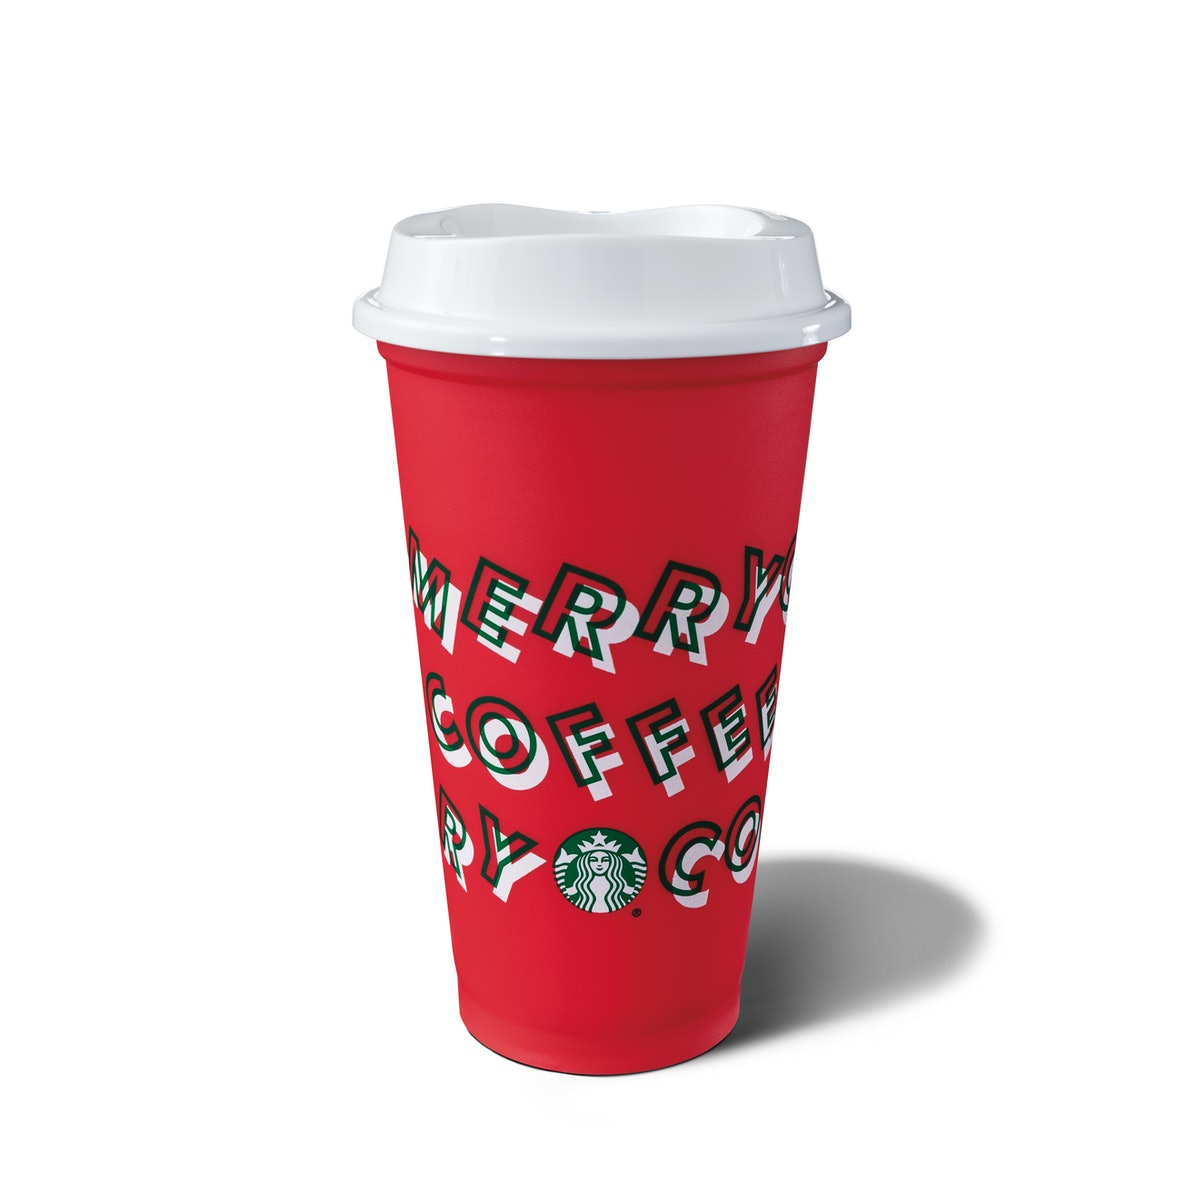 These Starbucks Holiday 2019 cups are brand new, plus Starbucks has brought back its red reusable holiday cup.